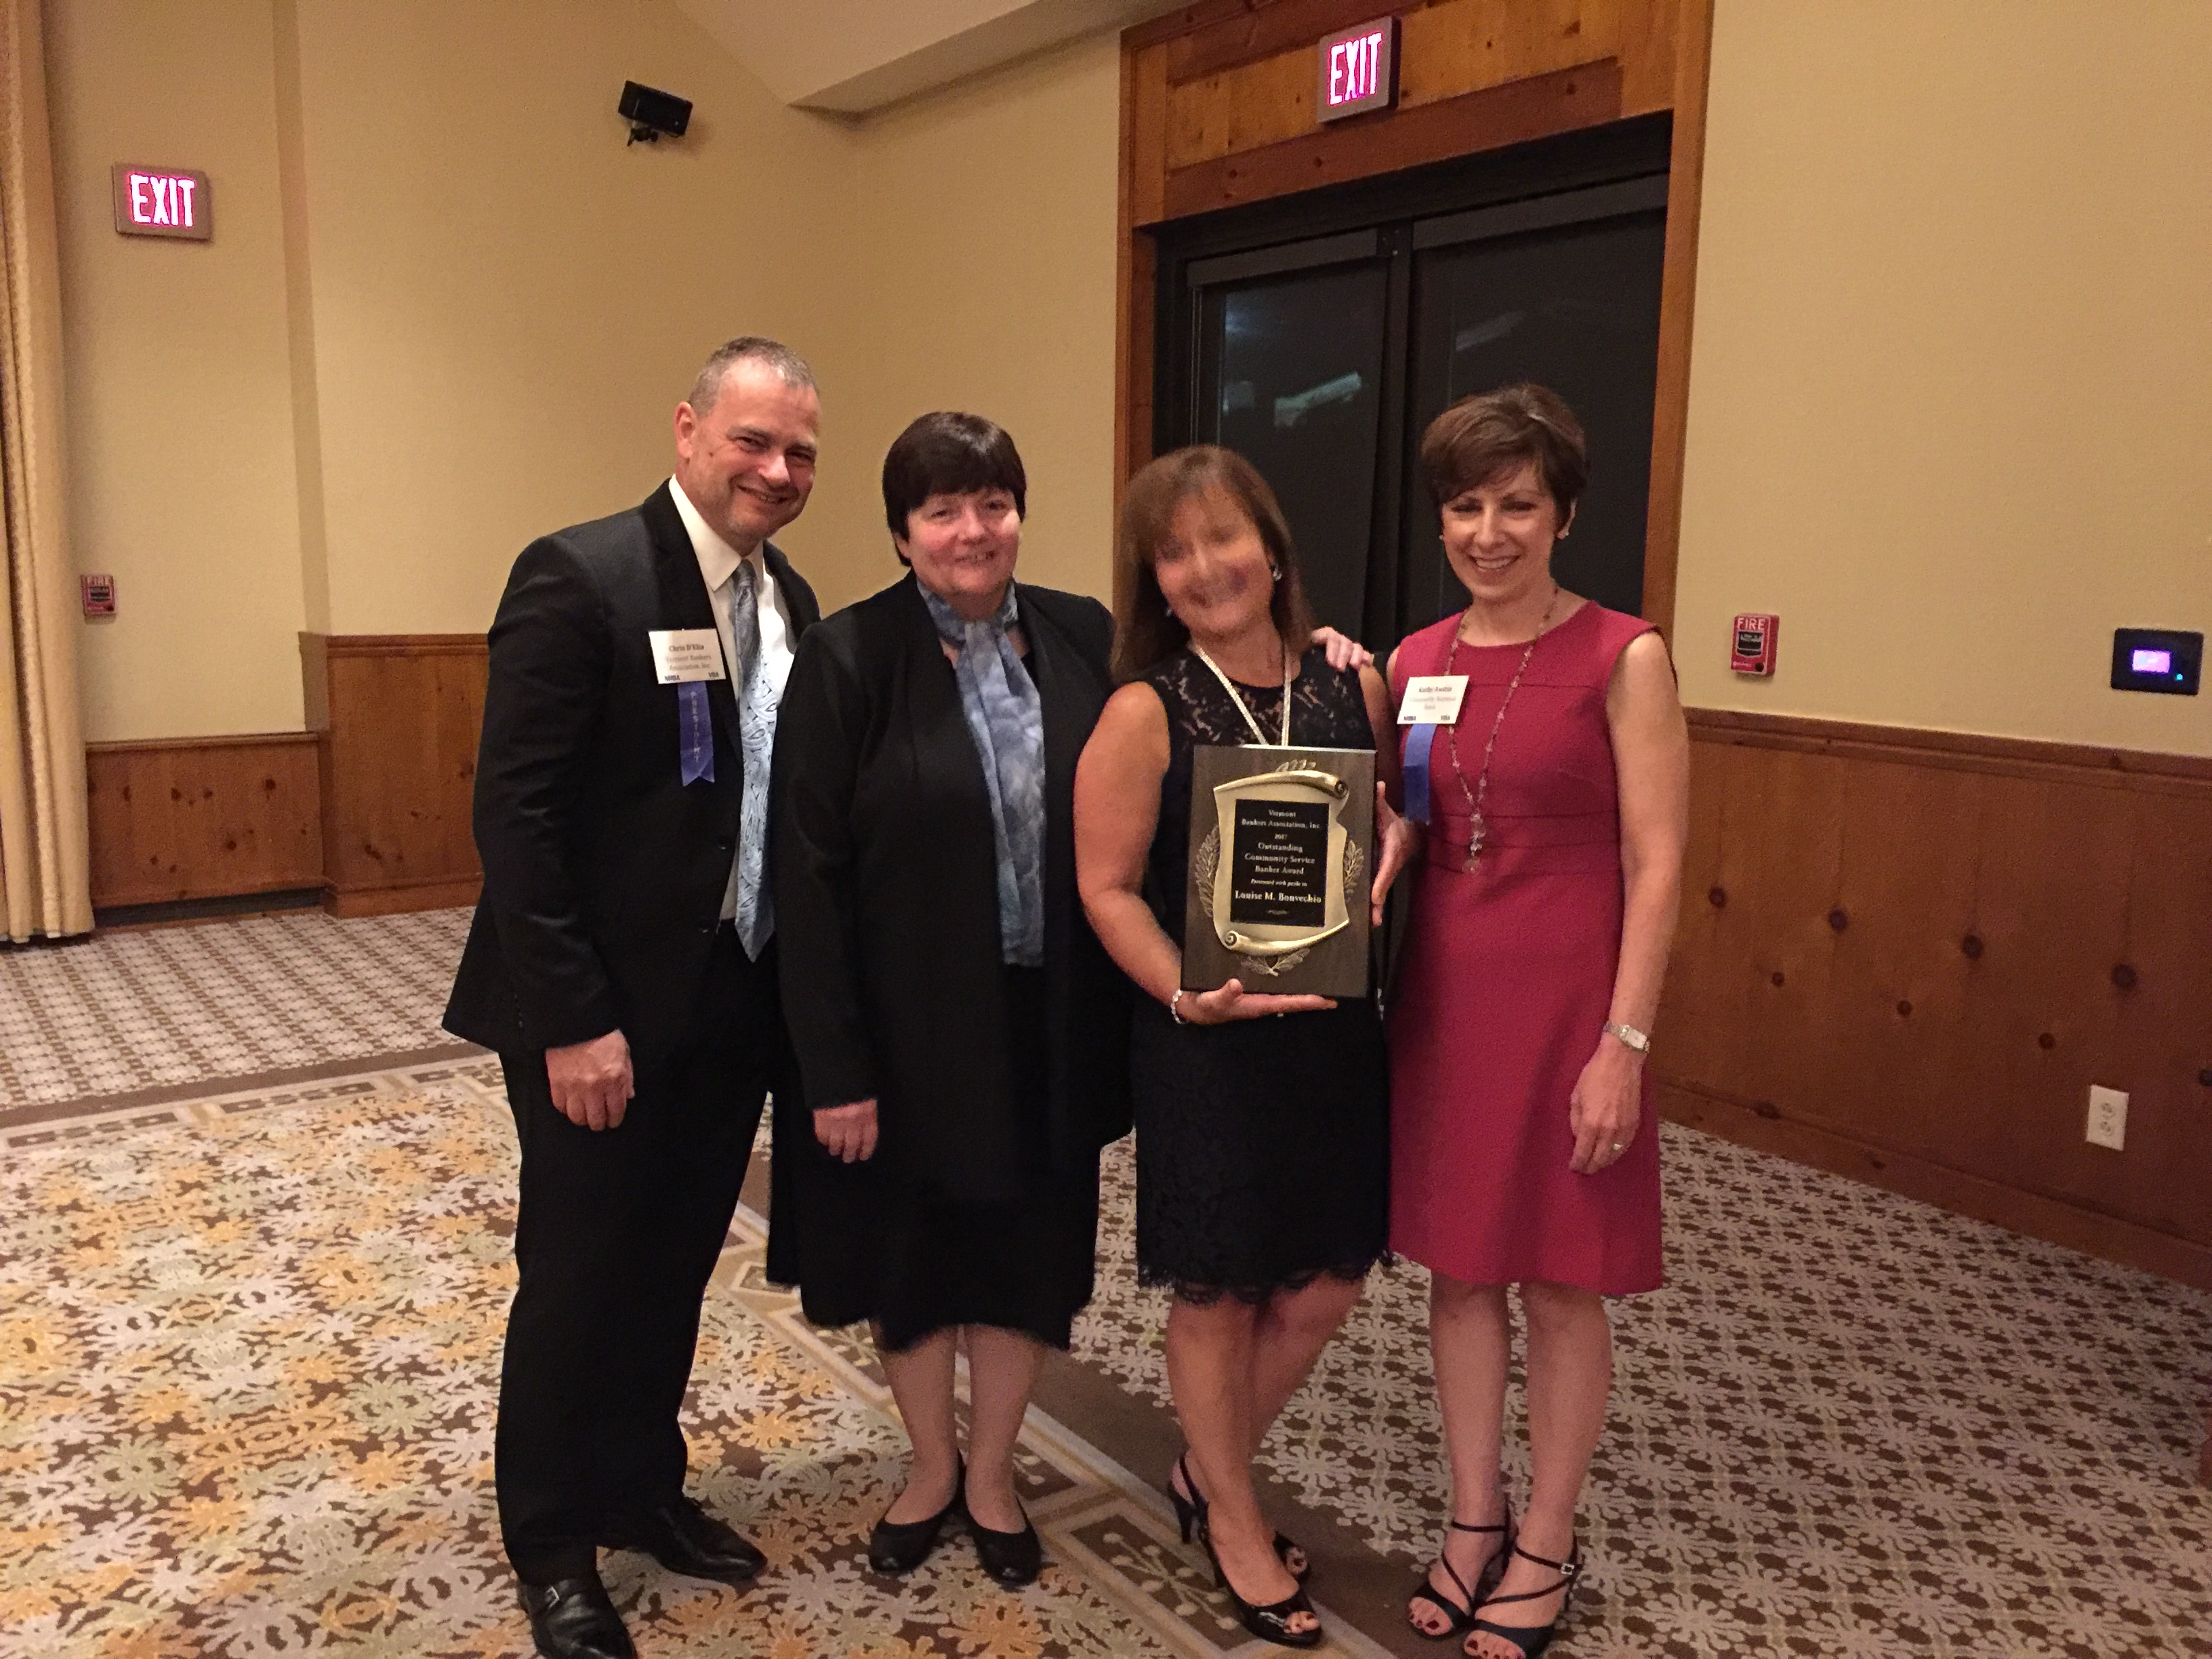 Left to right: Chris D'Elia, VBA President; State Treasurer Beth Pearce, Louise Bonvechio and Kathryn M. Austin, VBA Chairman and President & CEO, Community National Bank